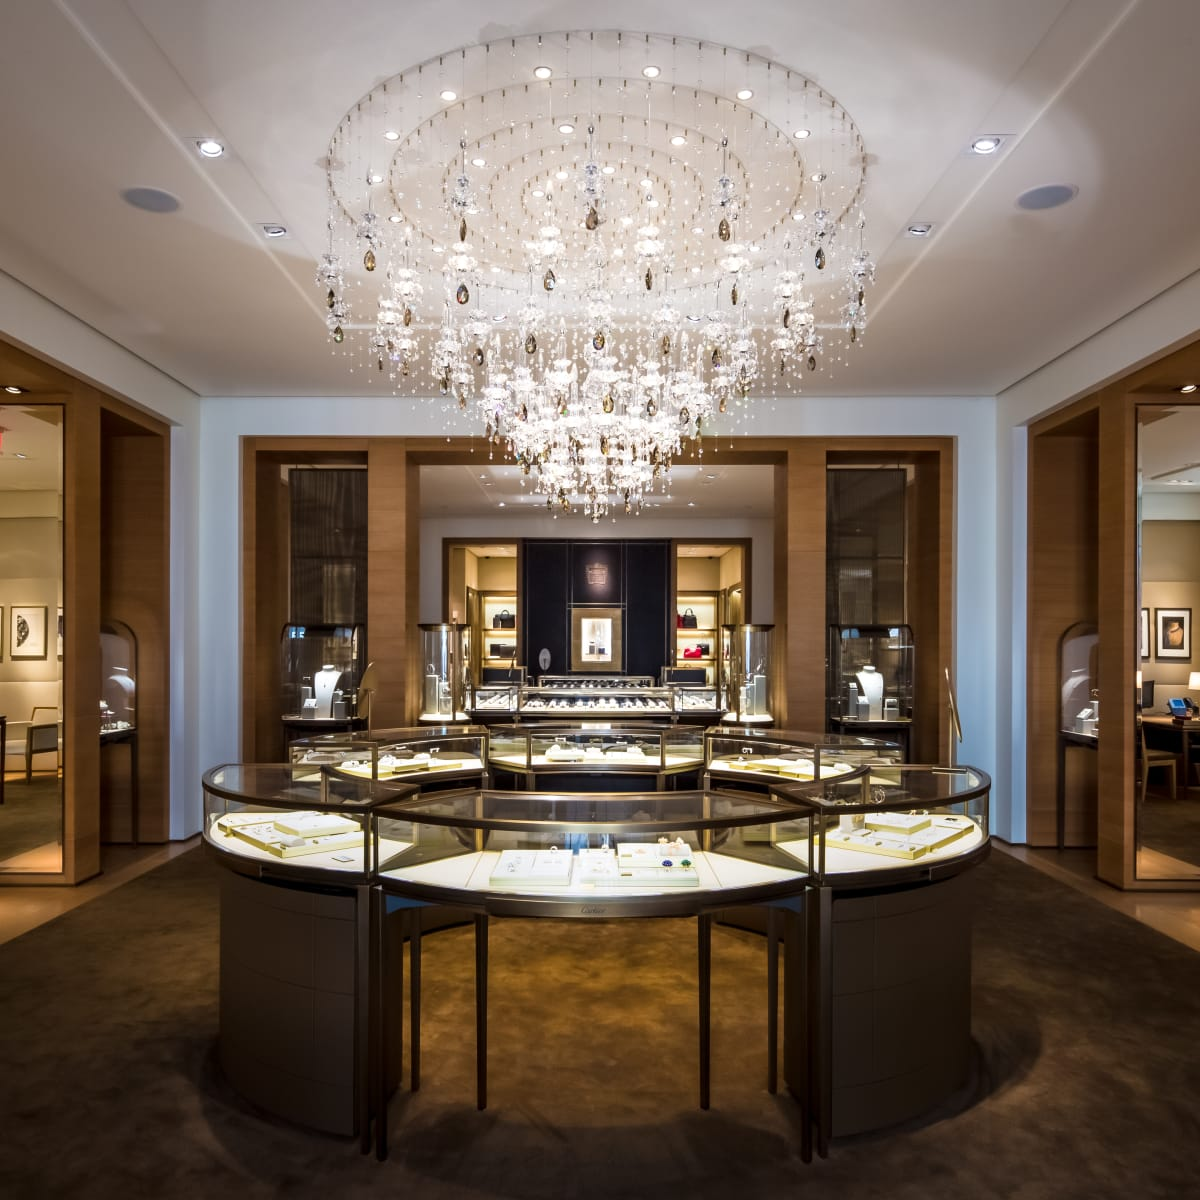 Cartier in River Oaks District interior